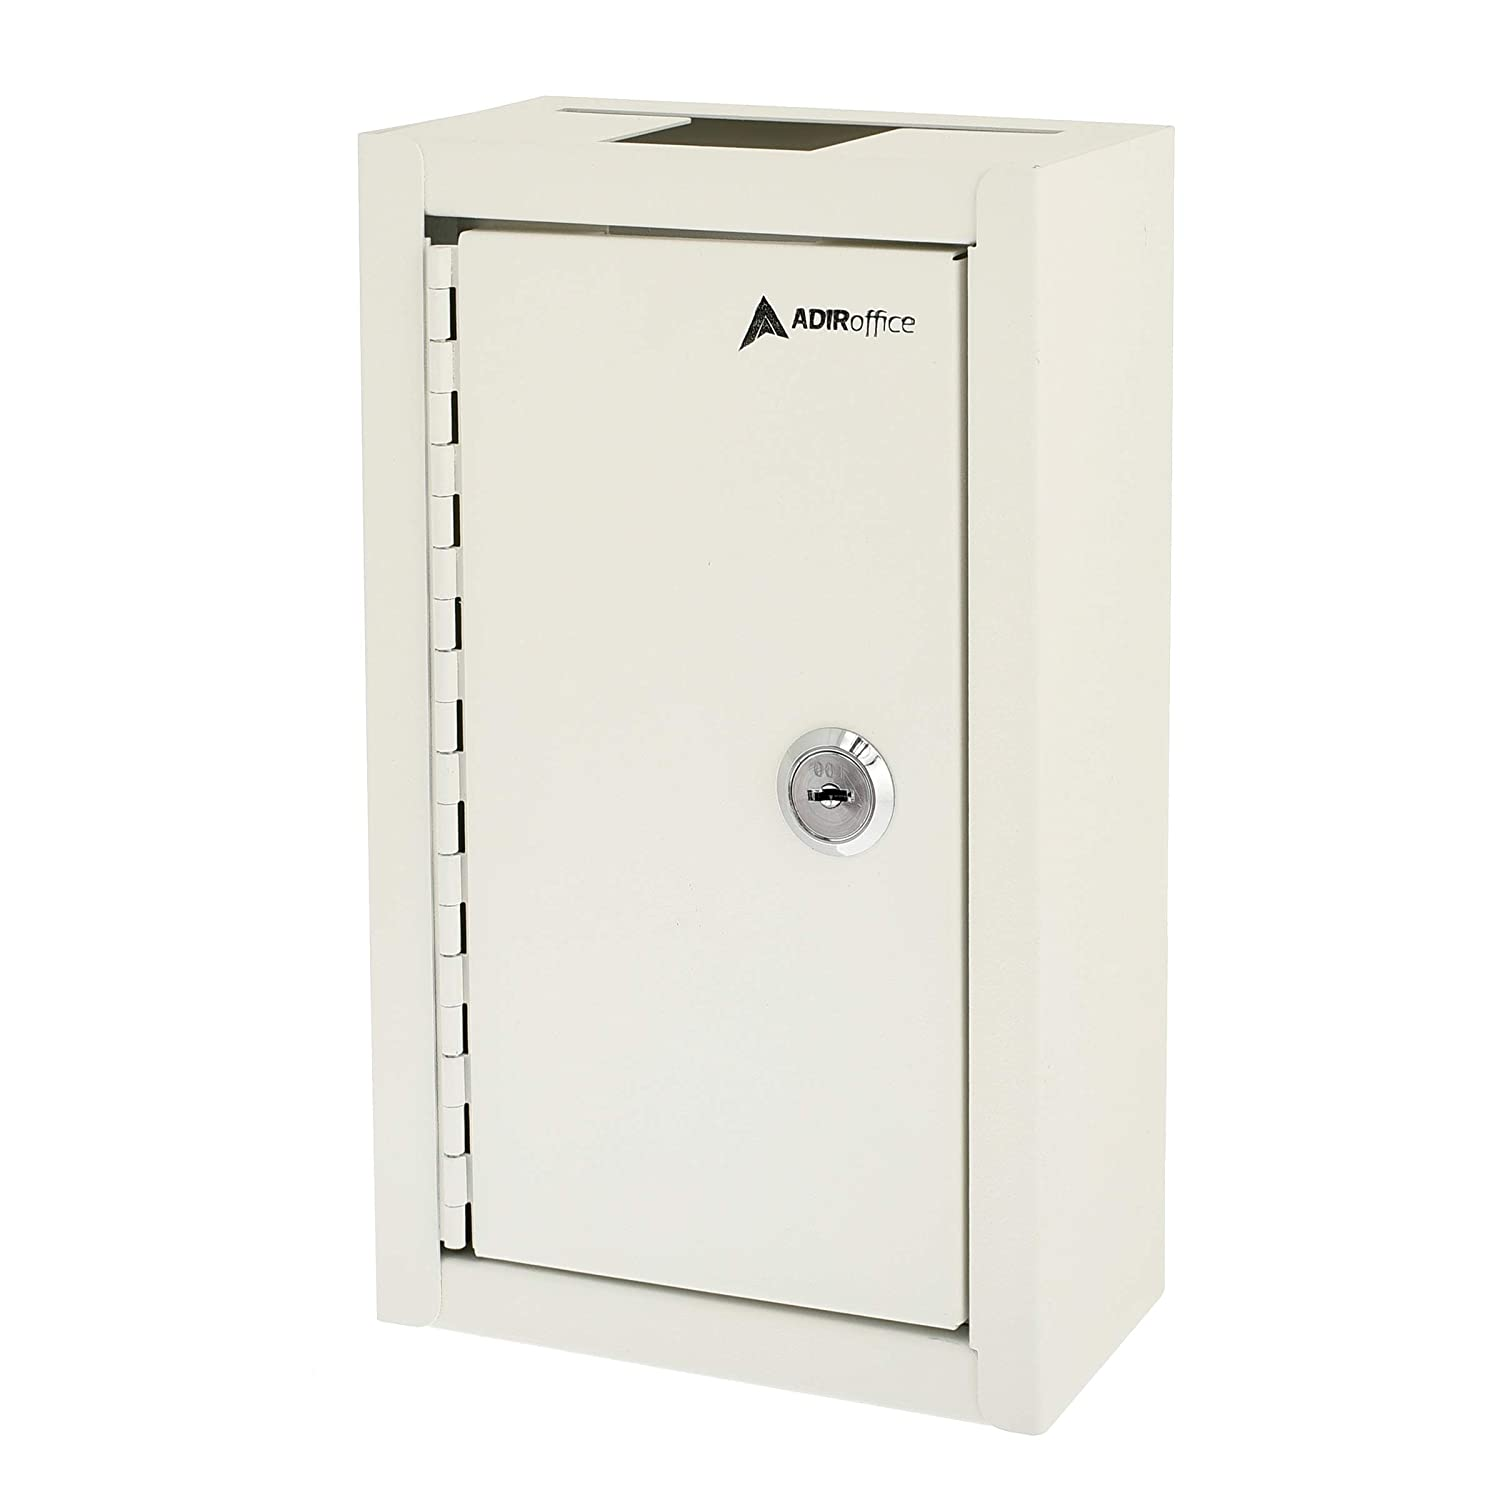 AdirOffice Large Key Drop Box for Home /& Business Use White Large Capacity Commercial Grade Storage Box Safe /& Secure Parcel /& Packages